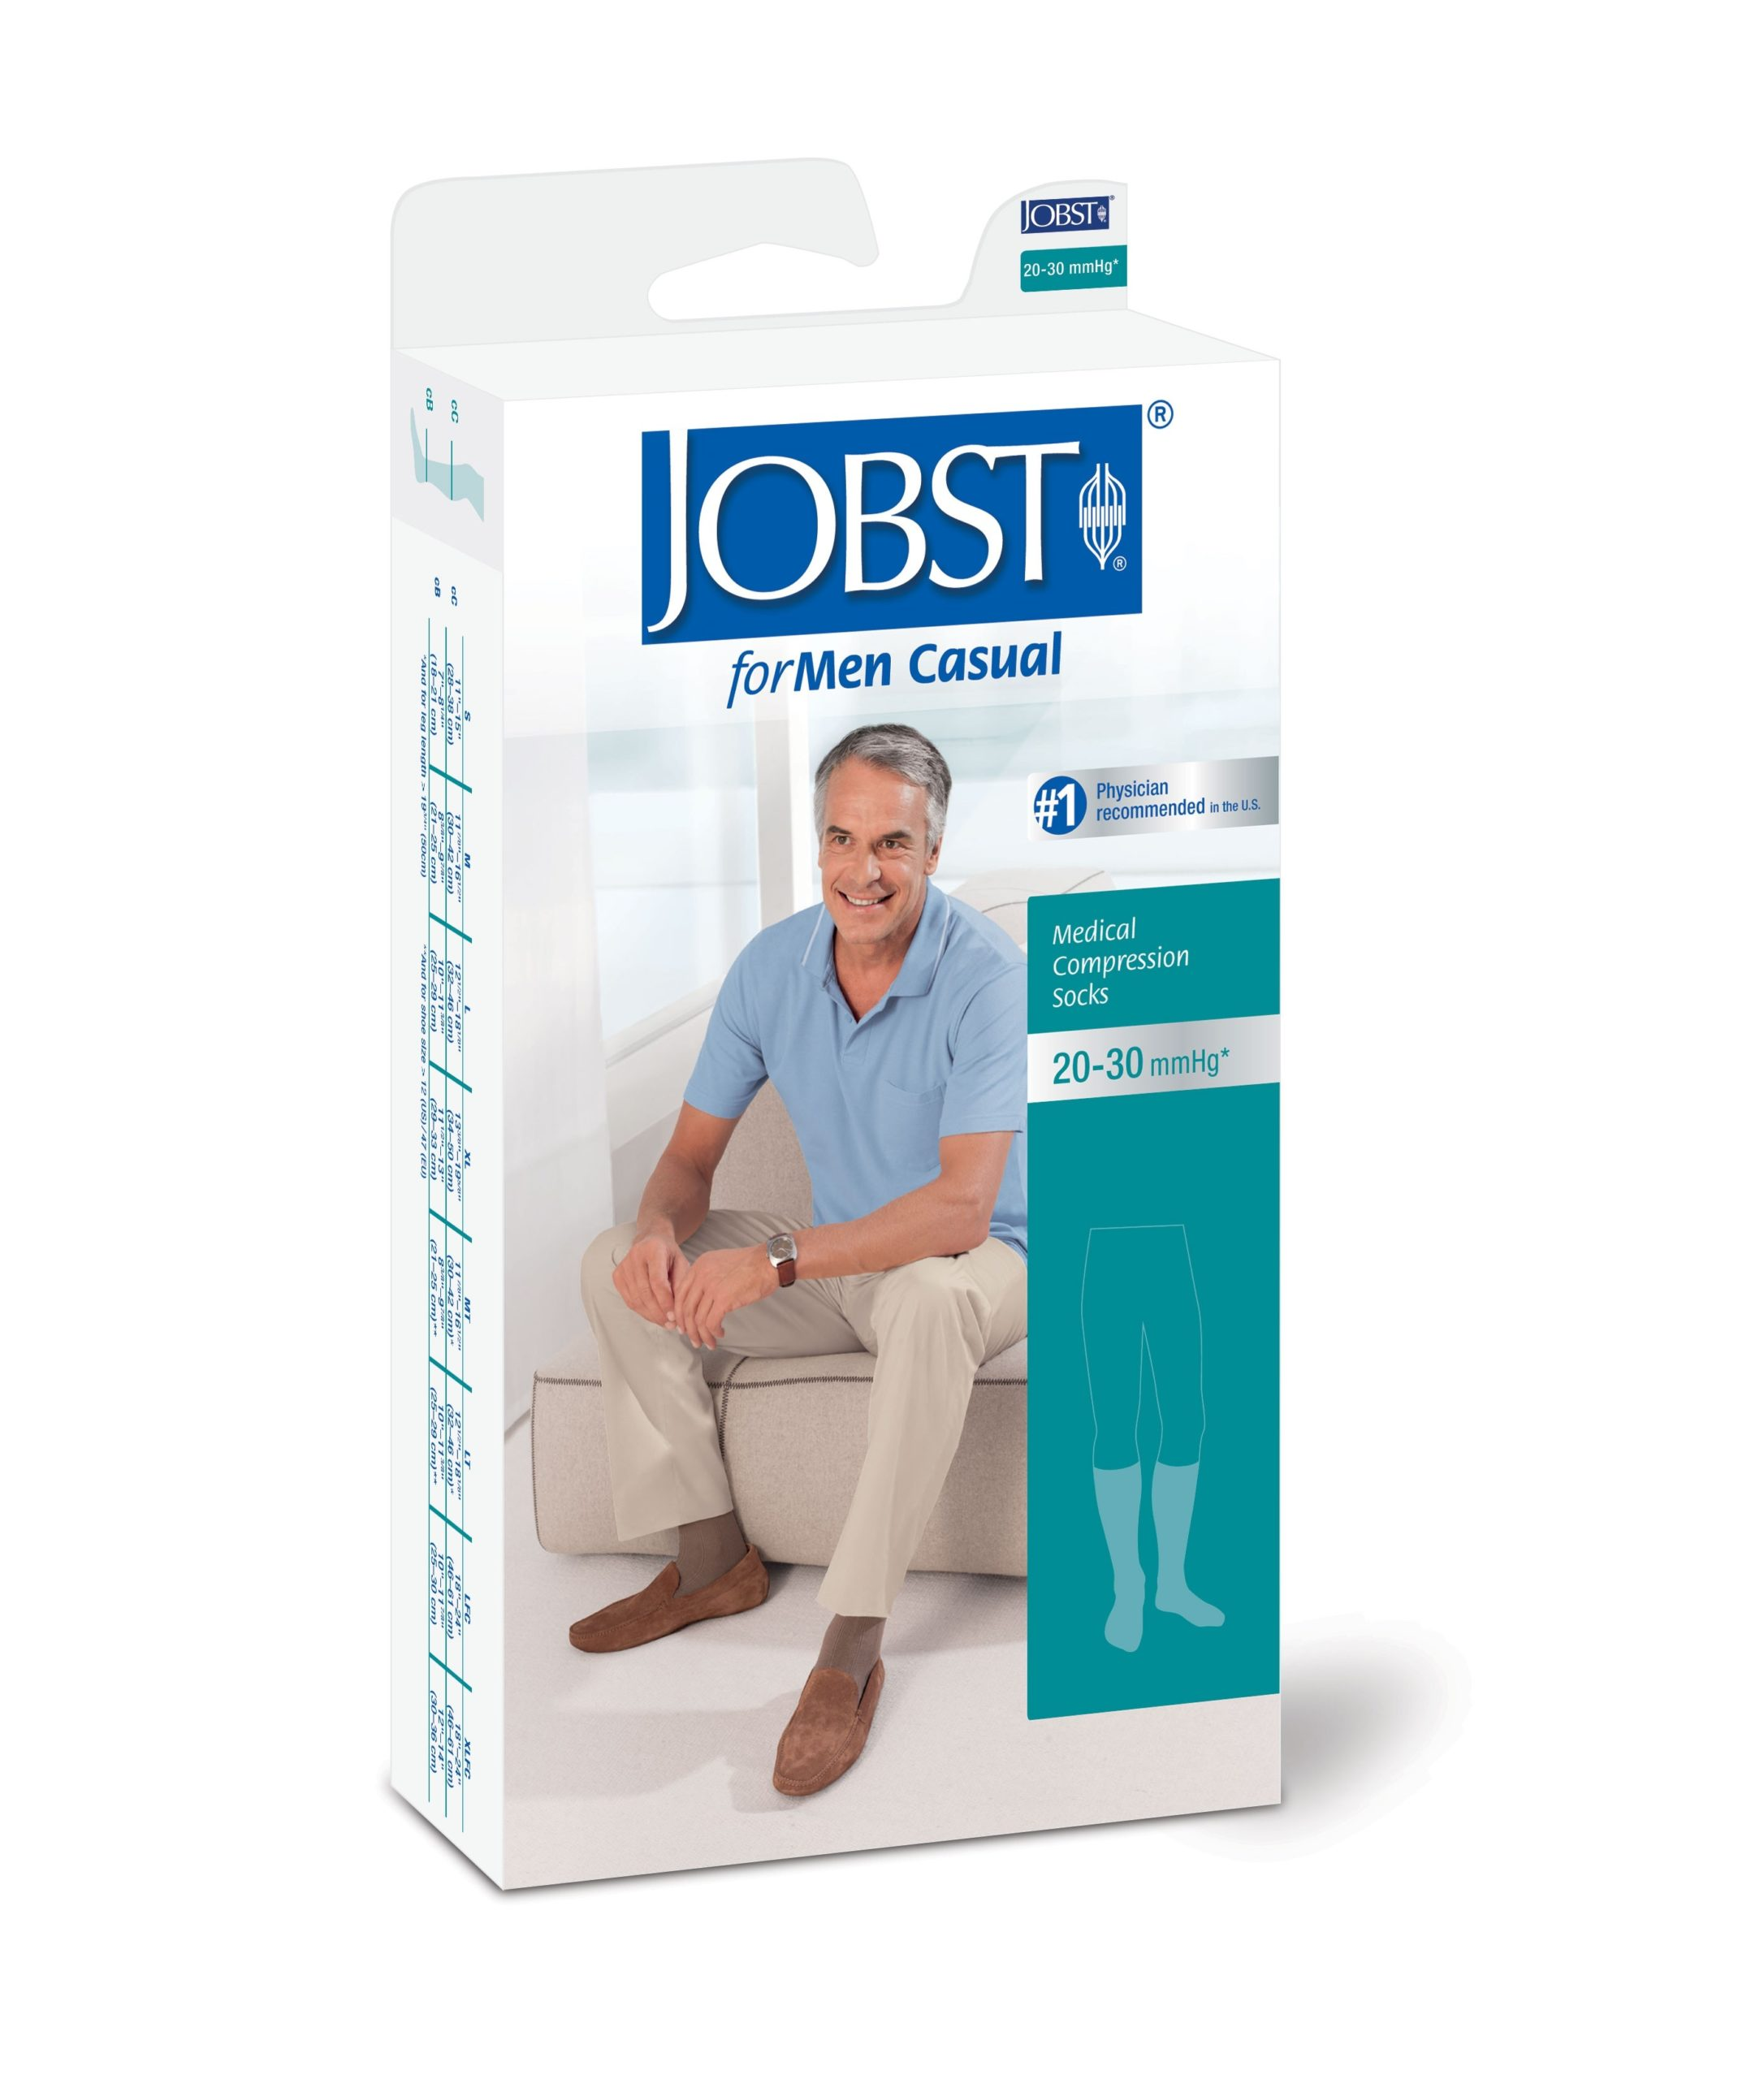 JOBST® Men Casual - On The Mend Medical Supplies & Equipment